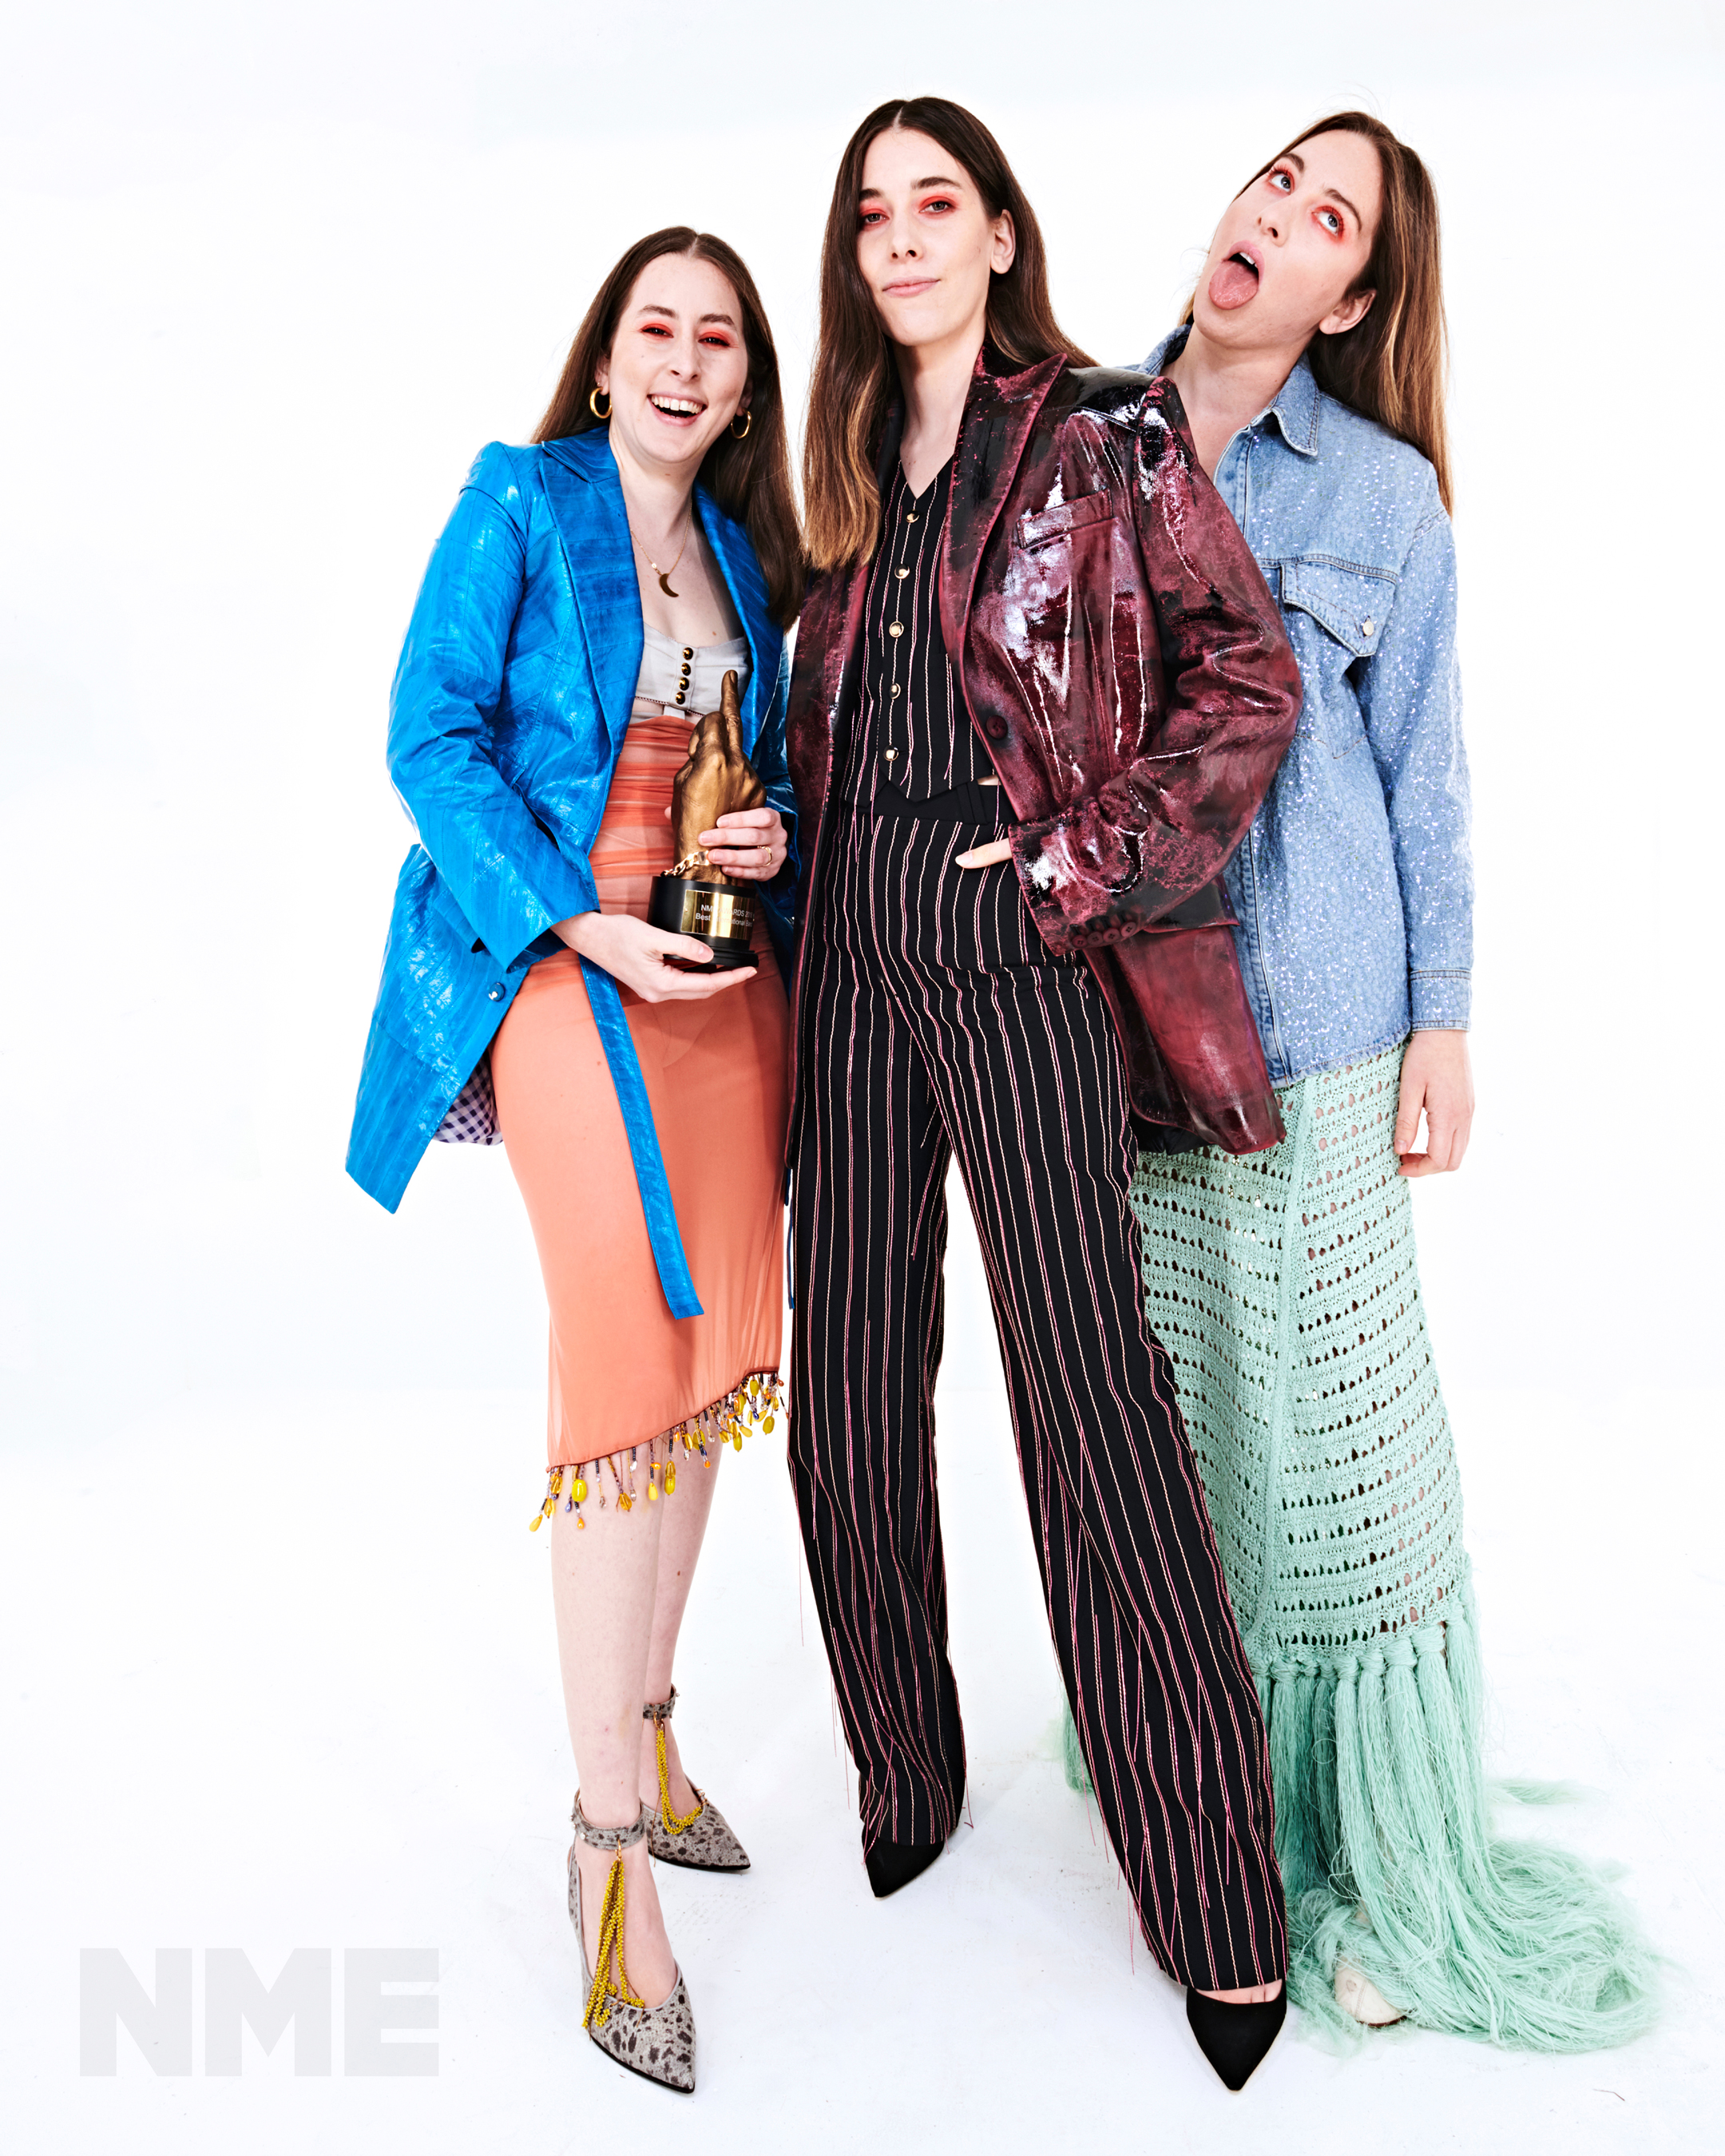 Haim at the NME Awards 2018